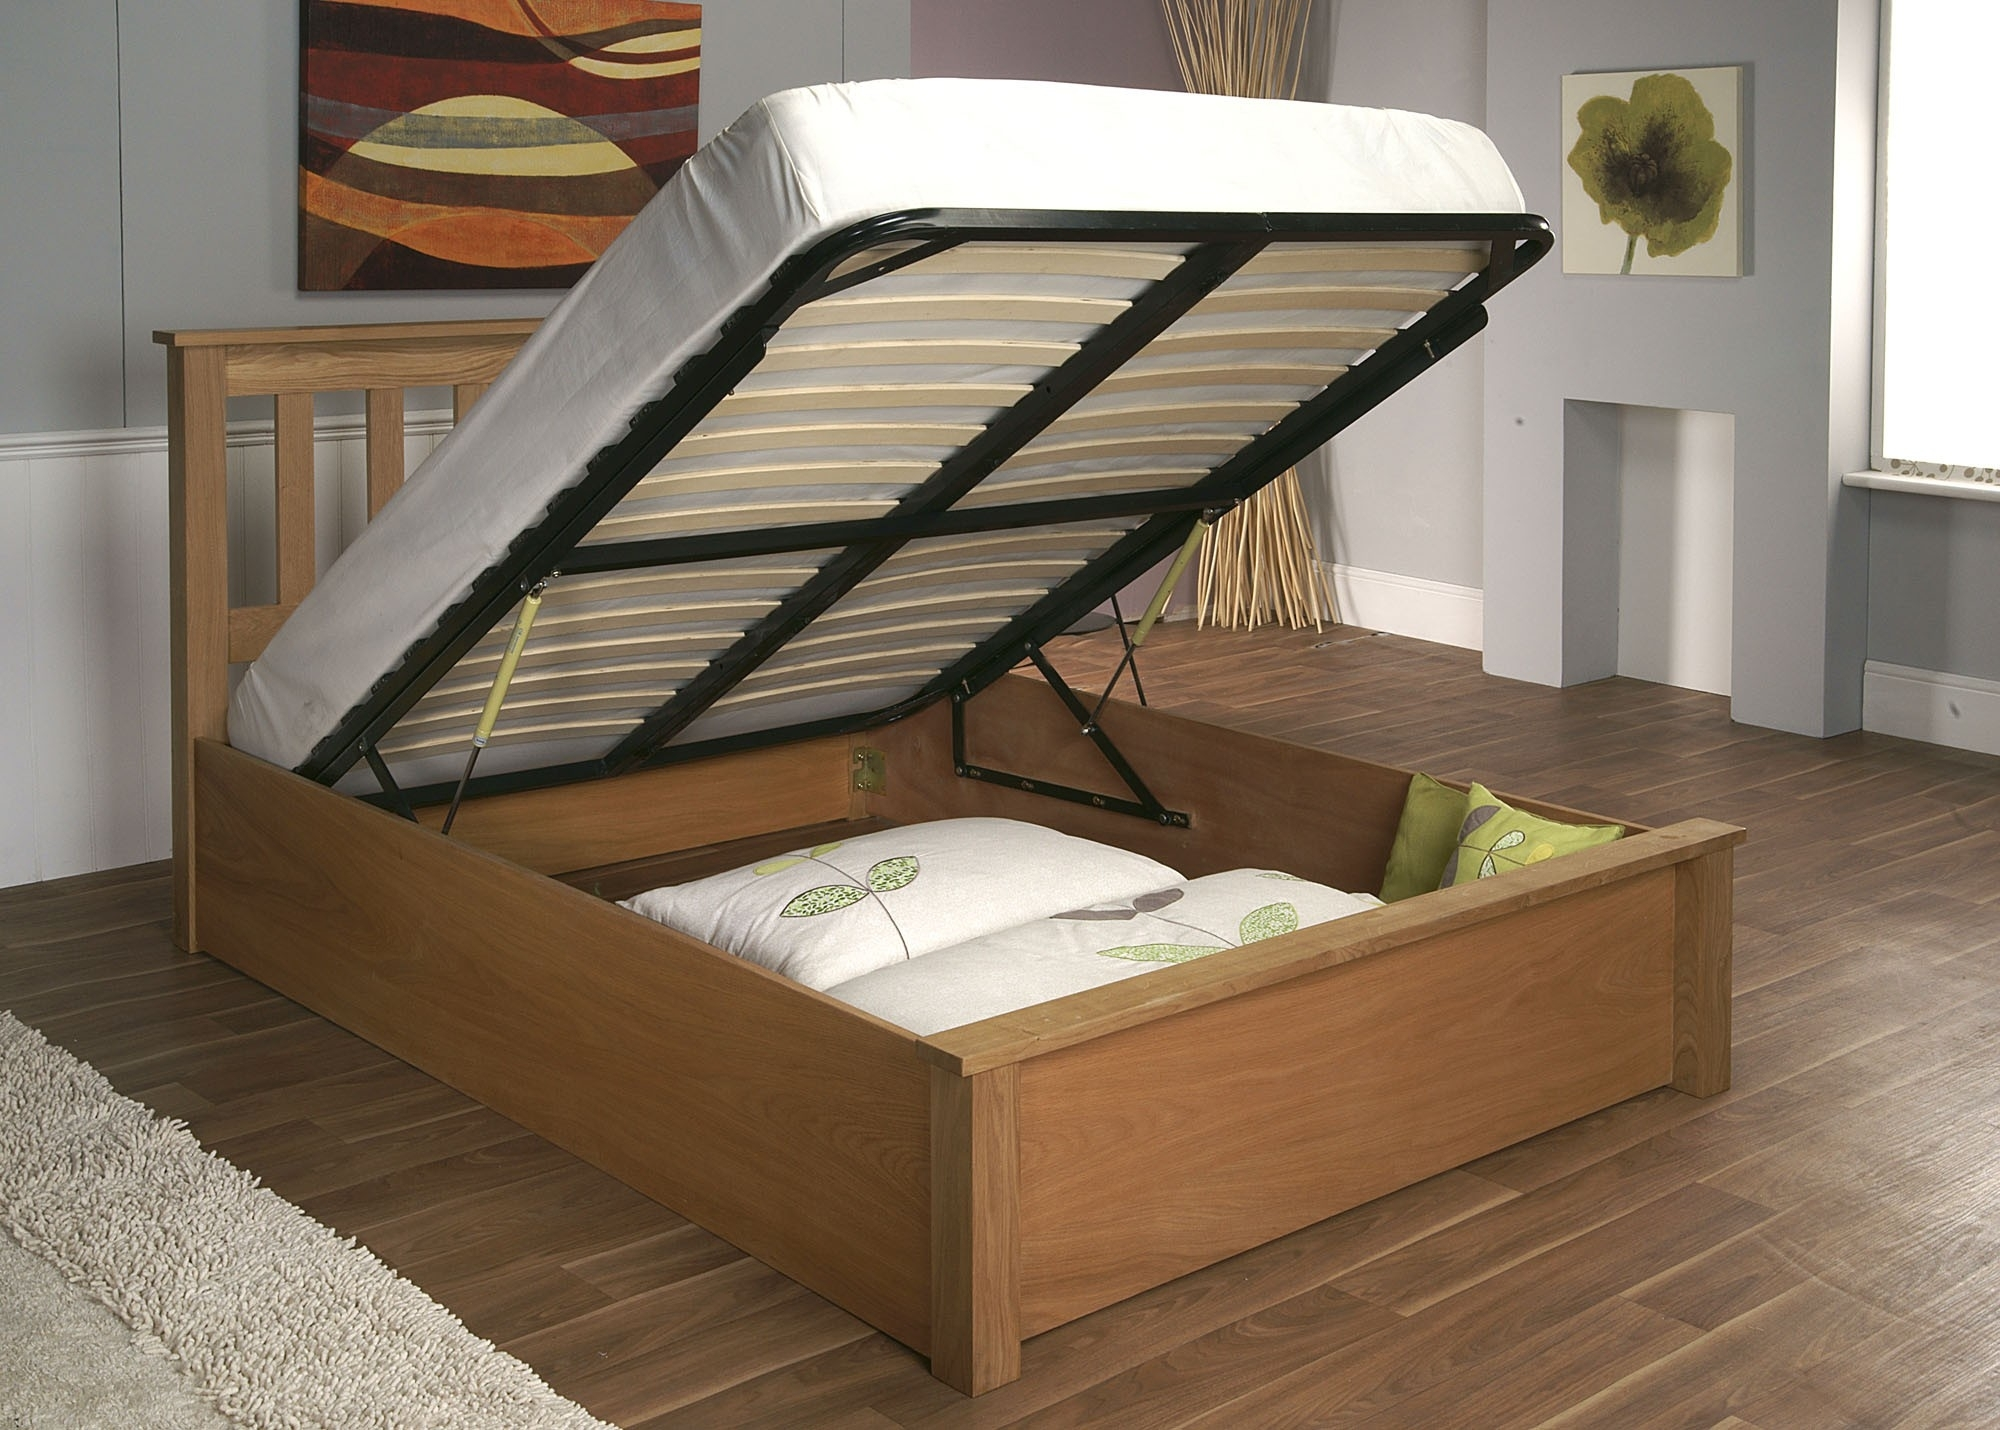 Cool Bed Frames To Make